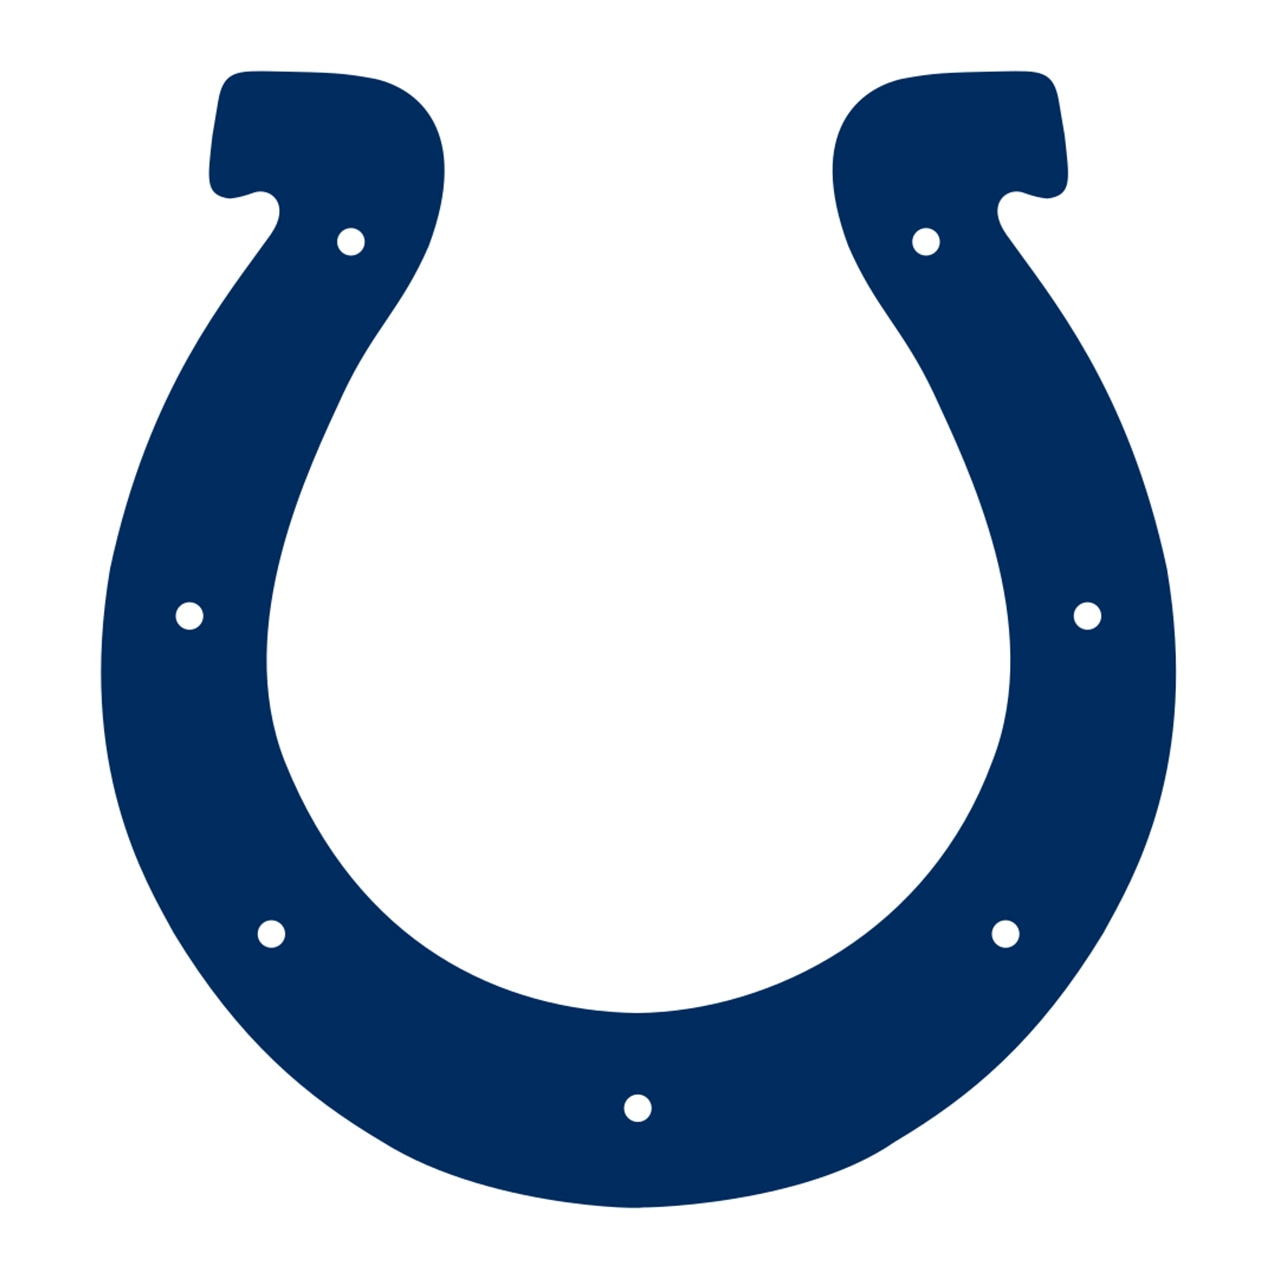 Colts (Home)